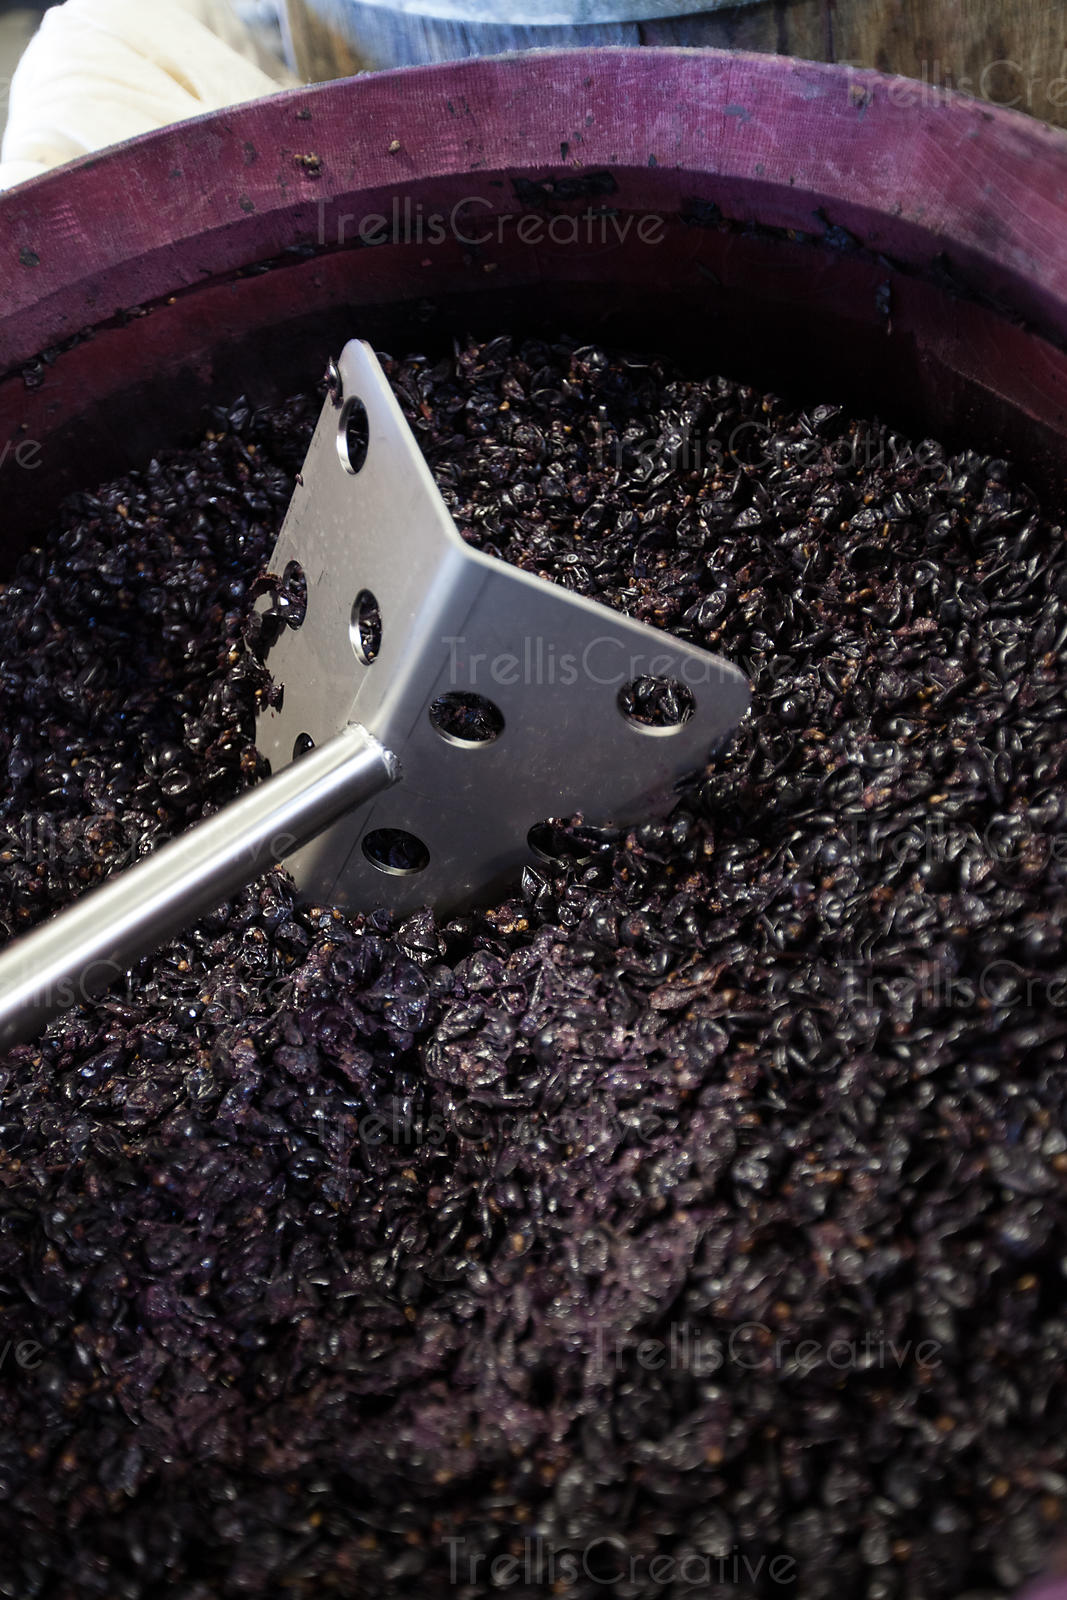 An open top barrel filled with fermenting cabernet sauvignon grapes being punched down